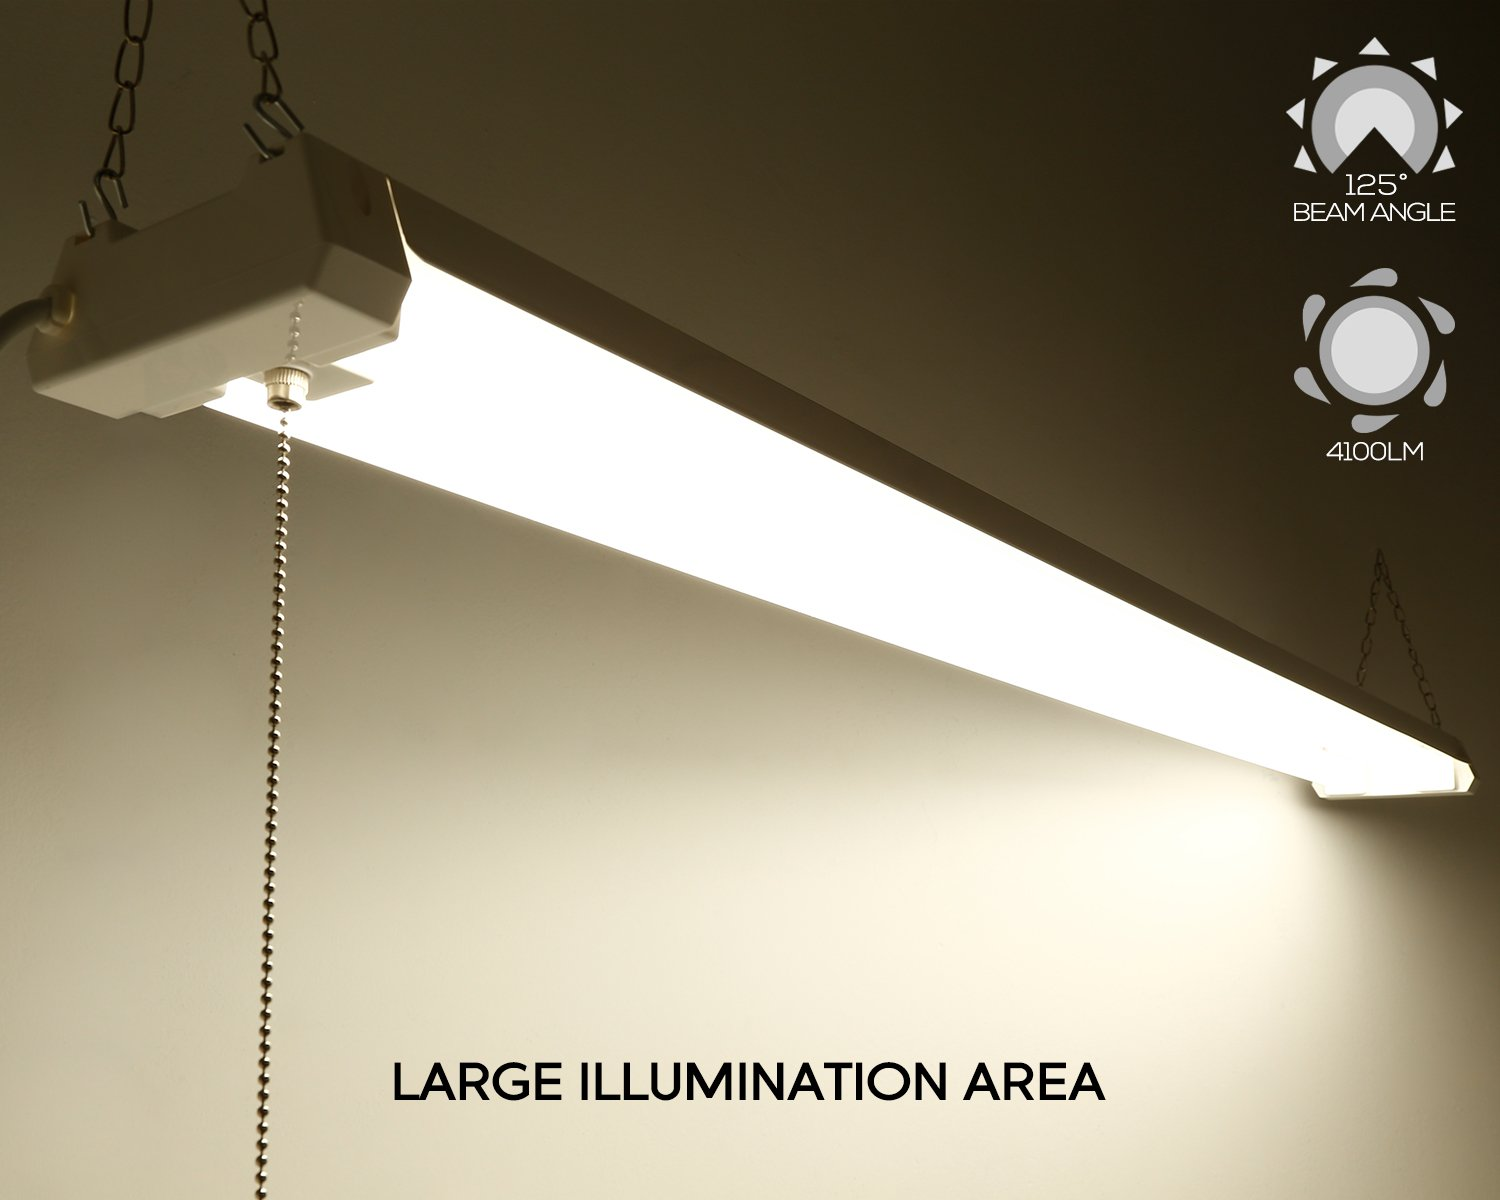 4ft 40w Linkable Led Utility Shop Light 4100 Lumens Energy Star Wiring Fixtures In Series Google Search Etl Listed Double Integrated Ceiling Fixture 4000k Cool White Pull Cord Switch